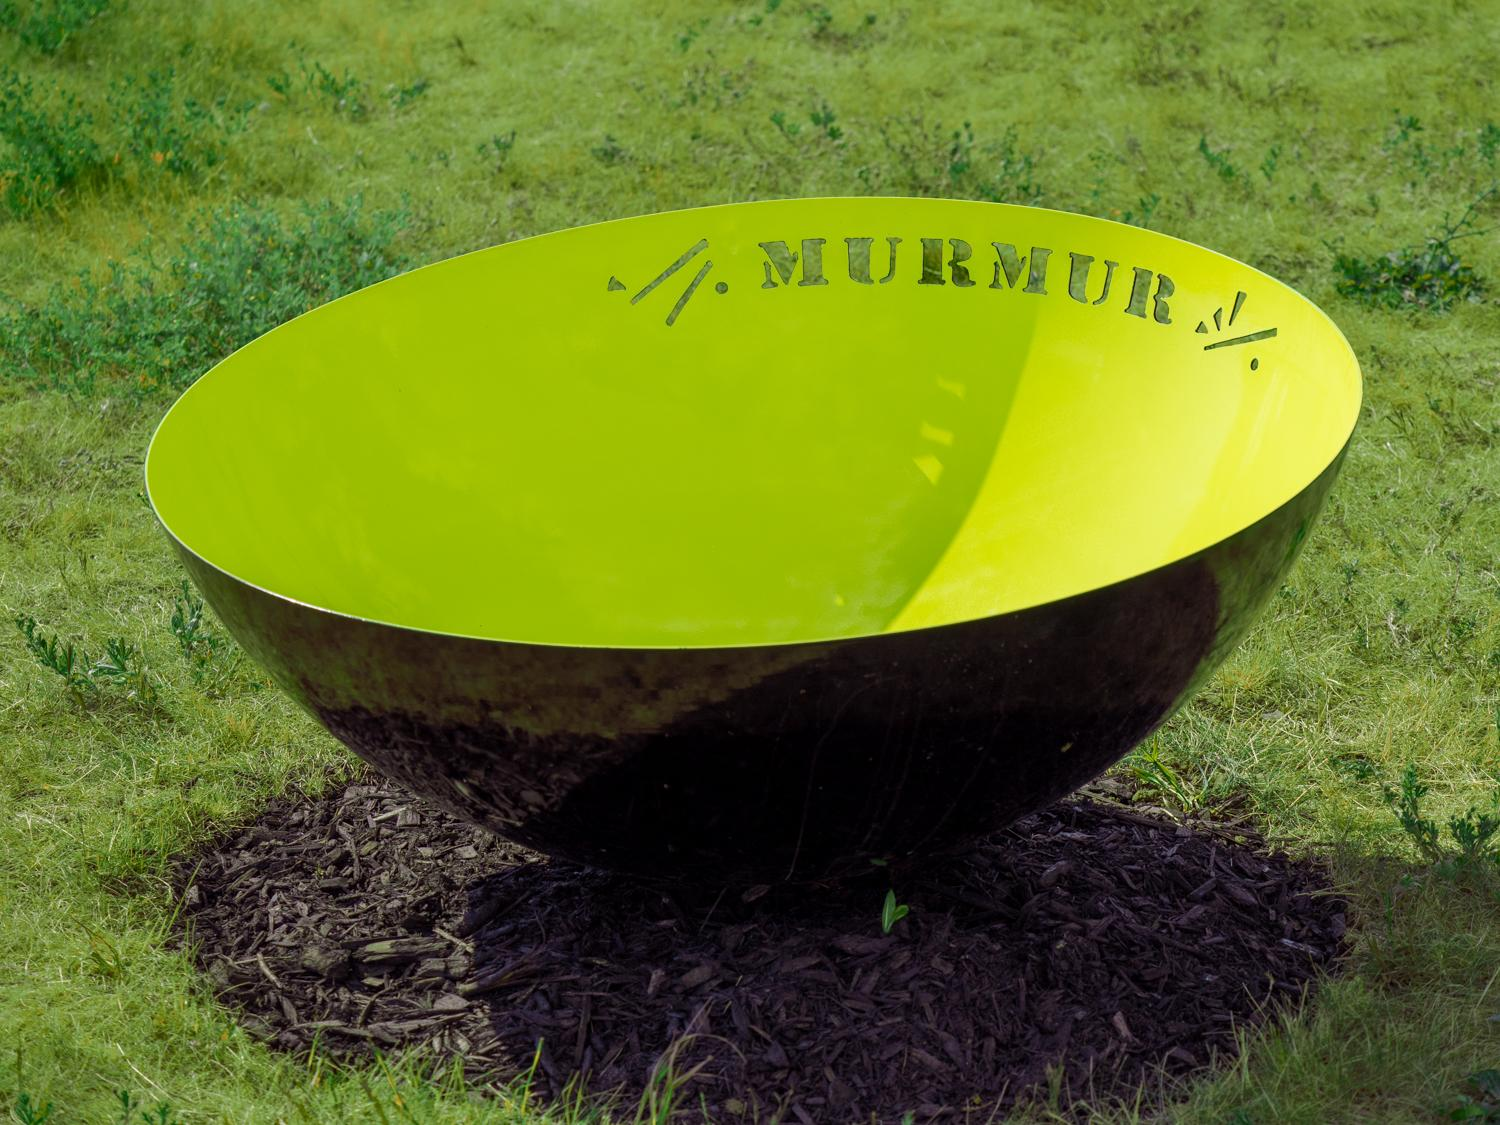 Murmur - bright, dynamic, narrative, painted stainless steel outdoor sculpture